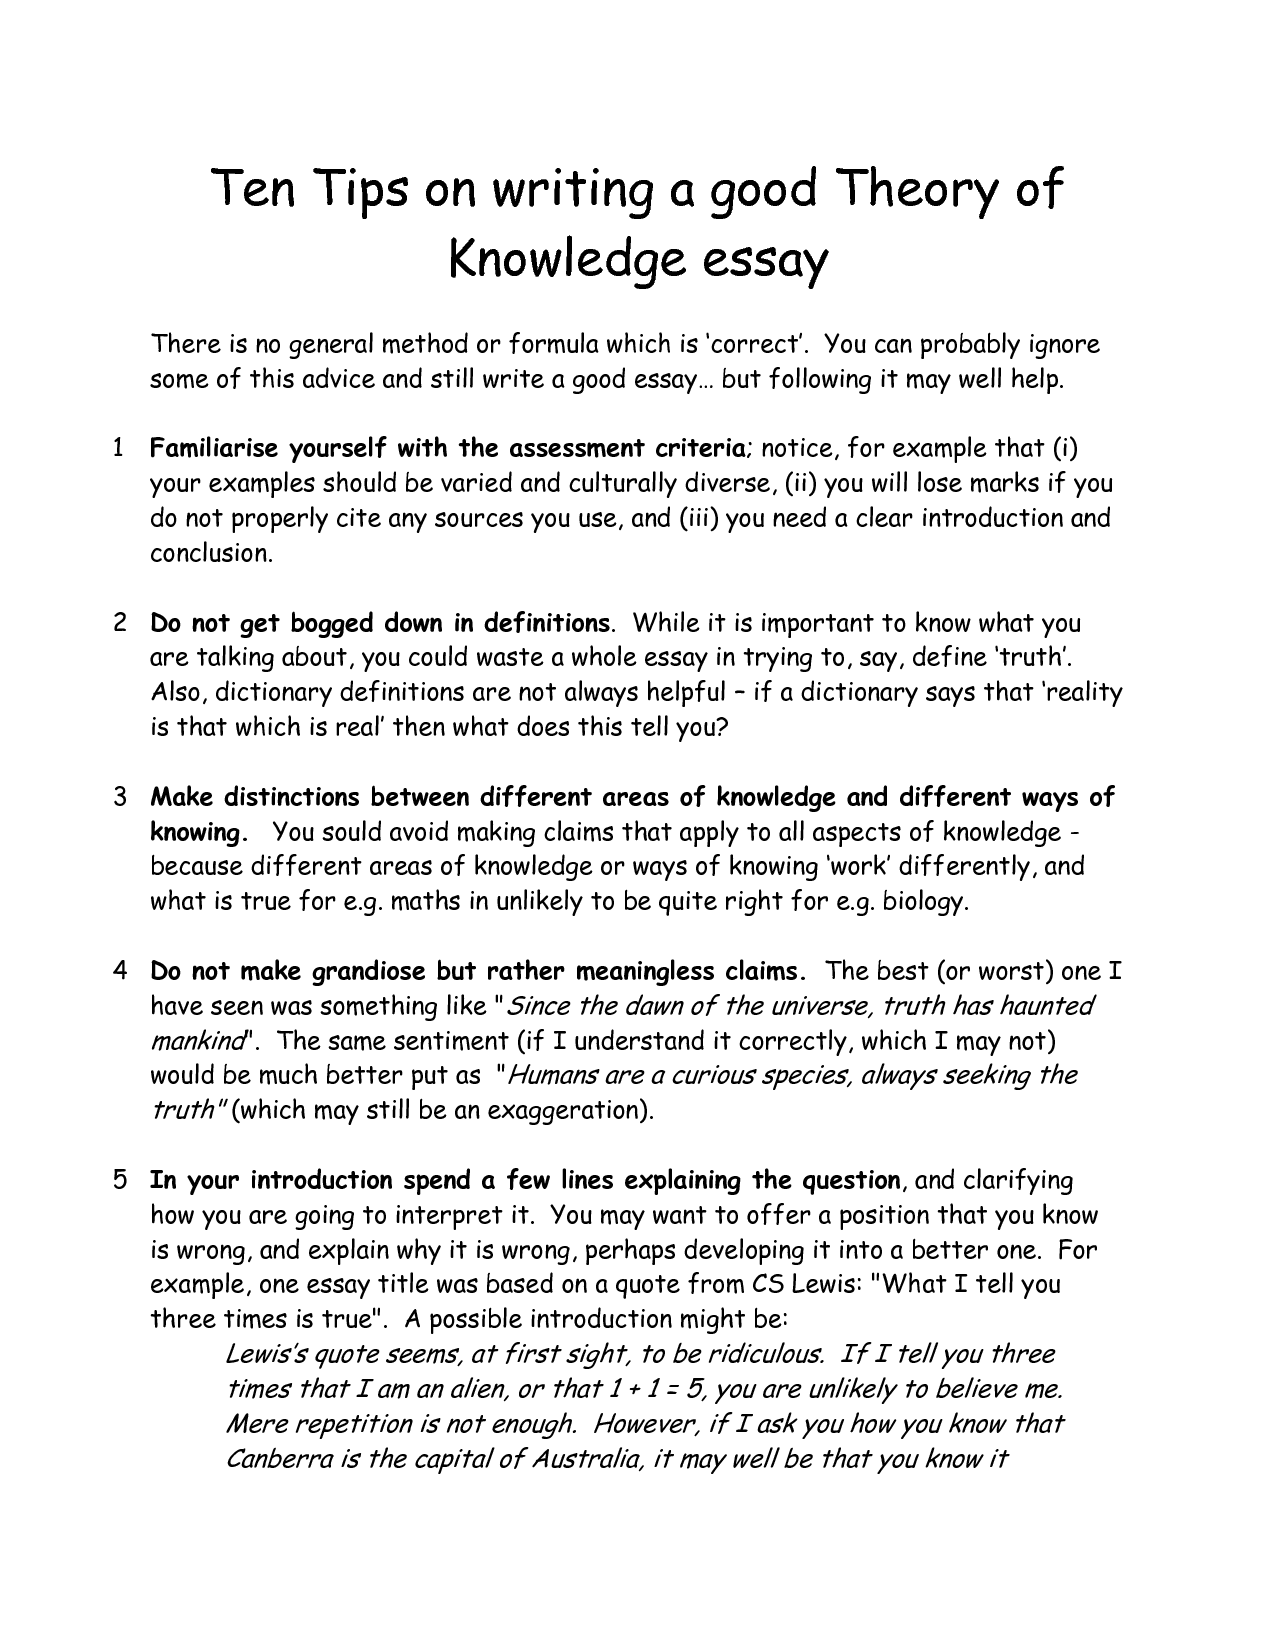 003 Qqllg0v8ct Essay Example How To Write About Singular A Yourself Narrative Short Myself Paper Without Using I Full